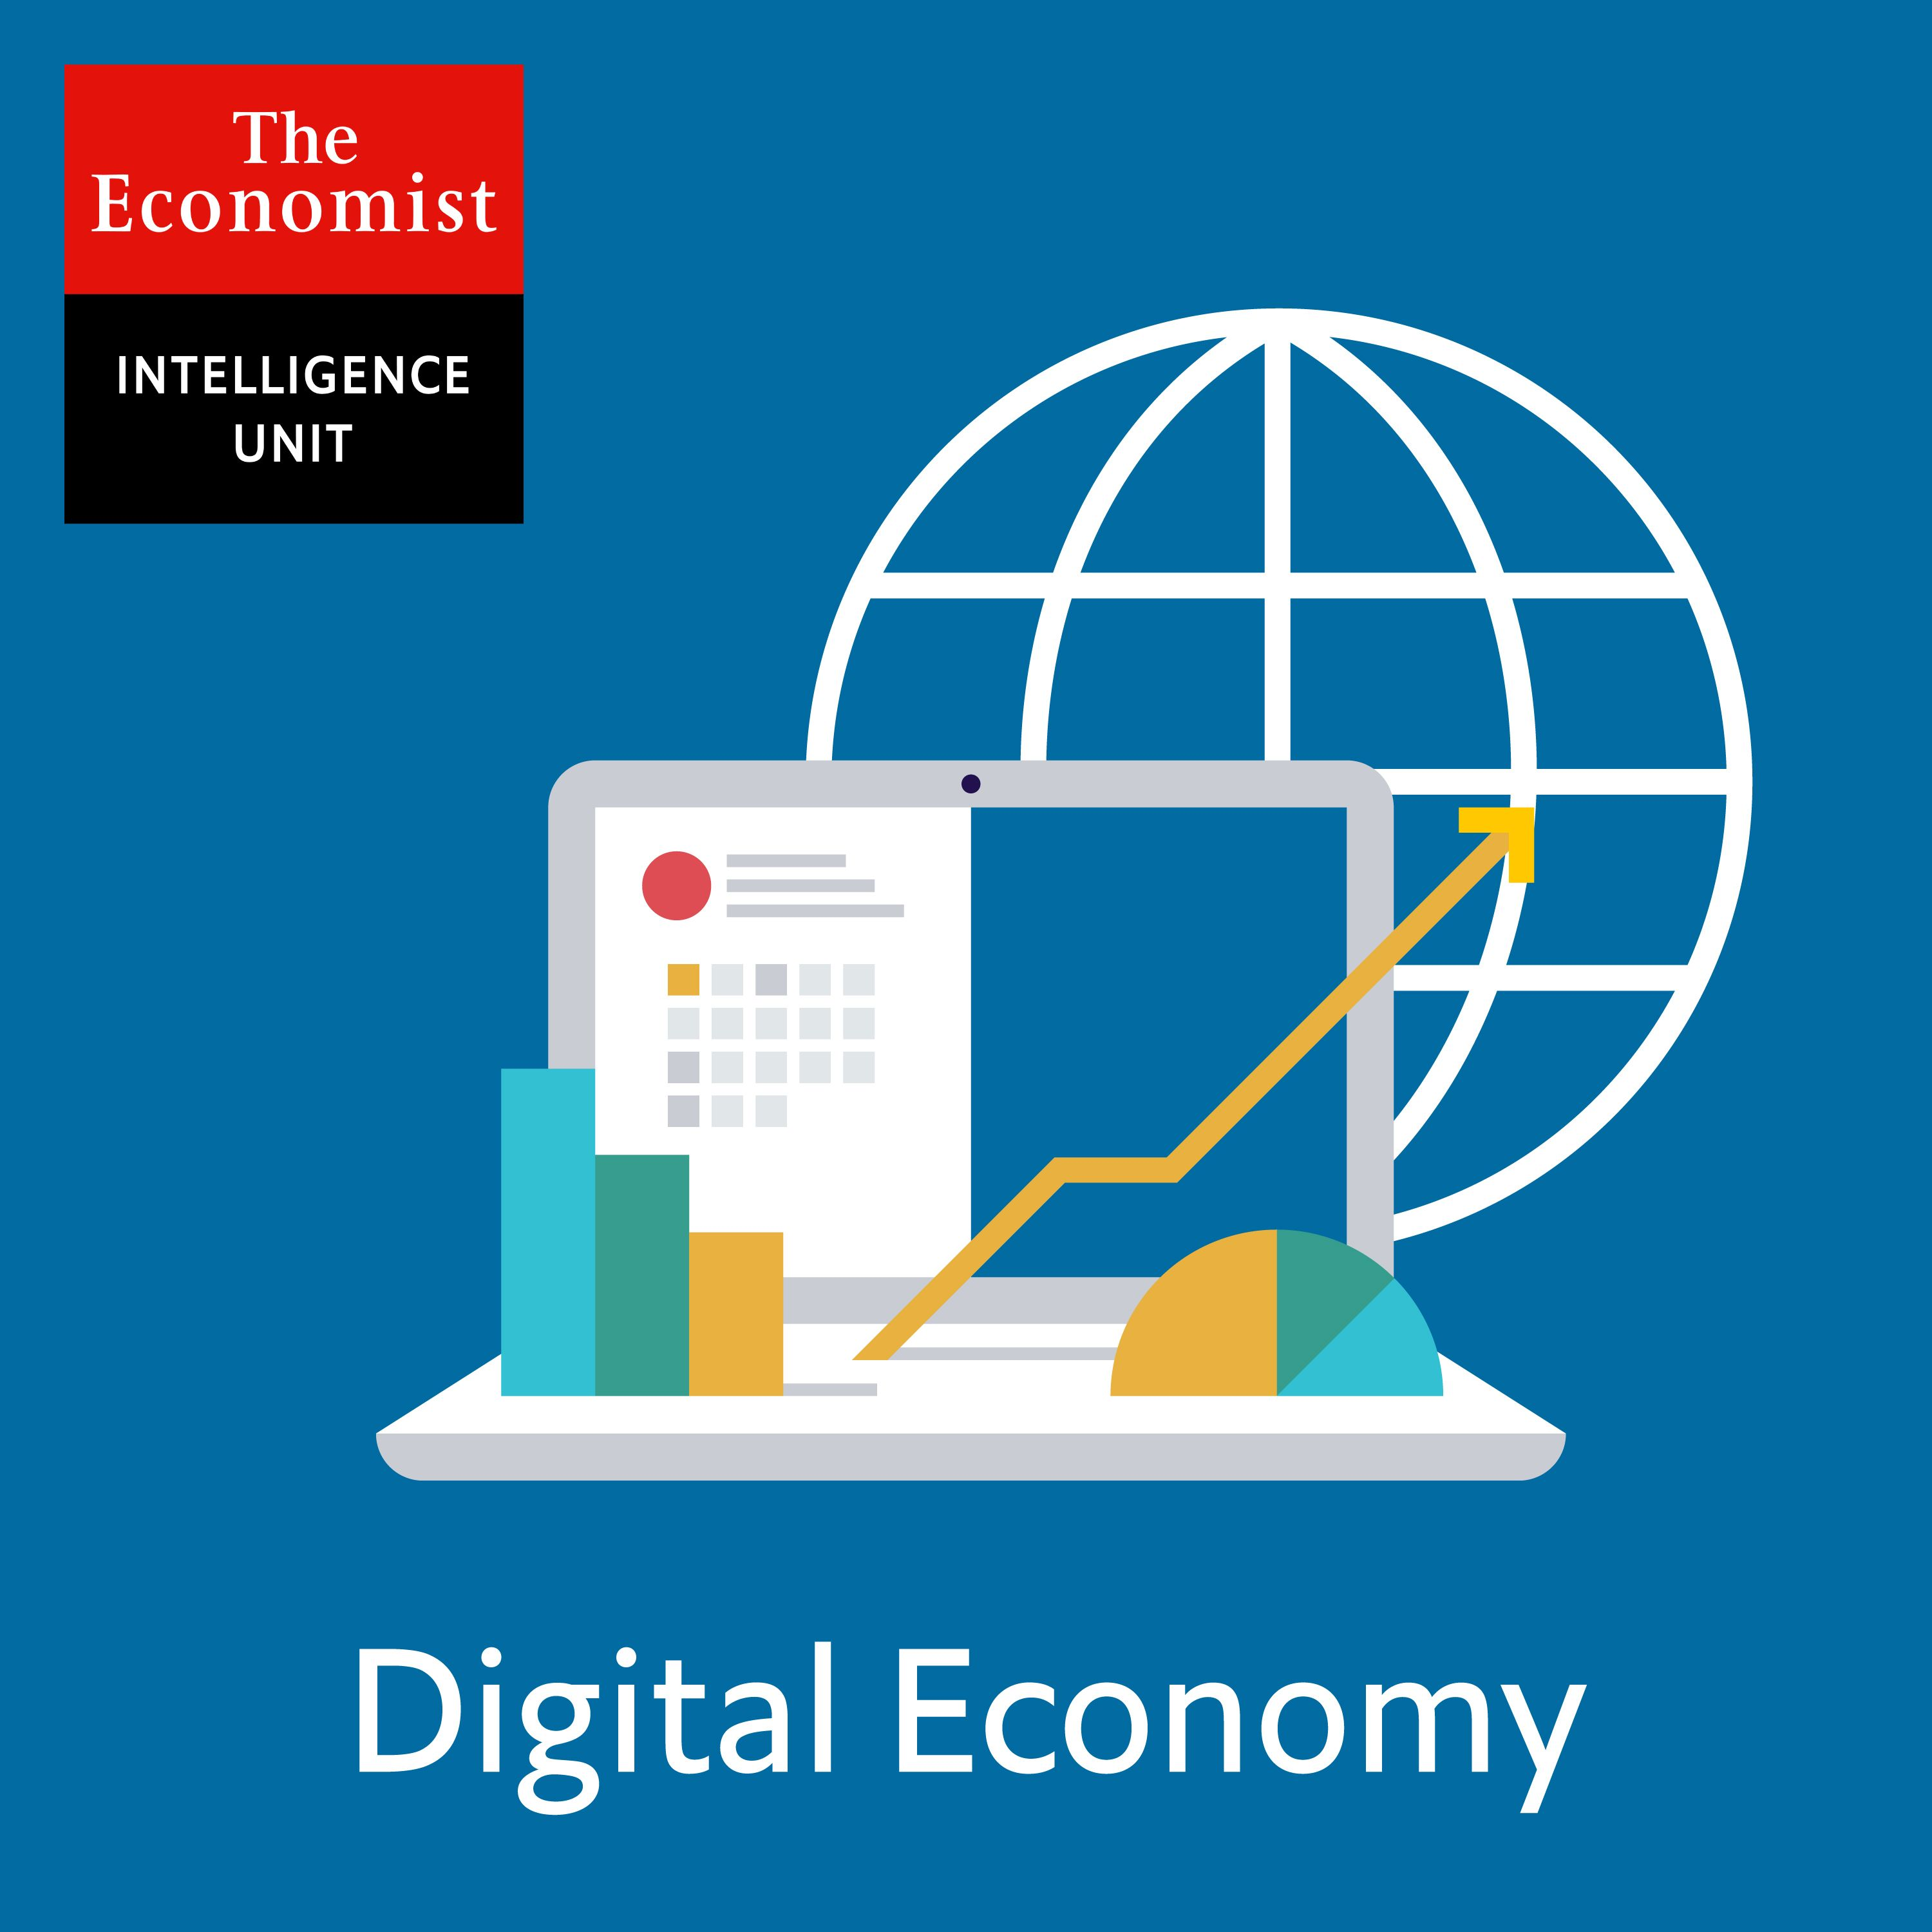 Digital Economy: Why digitisation is disrupting your business model